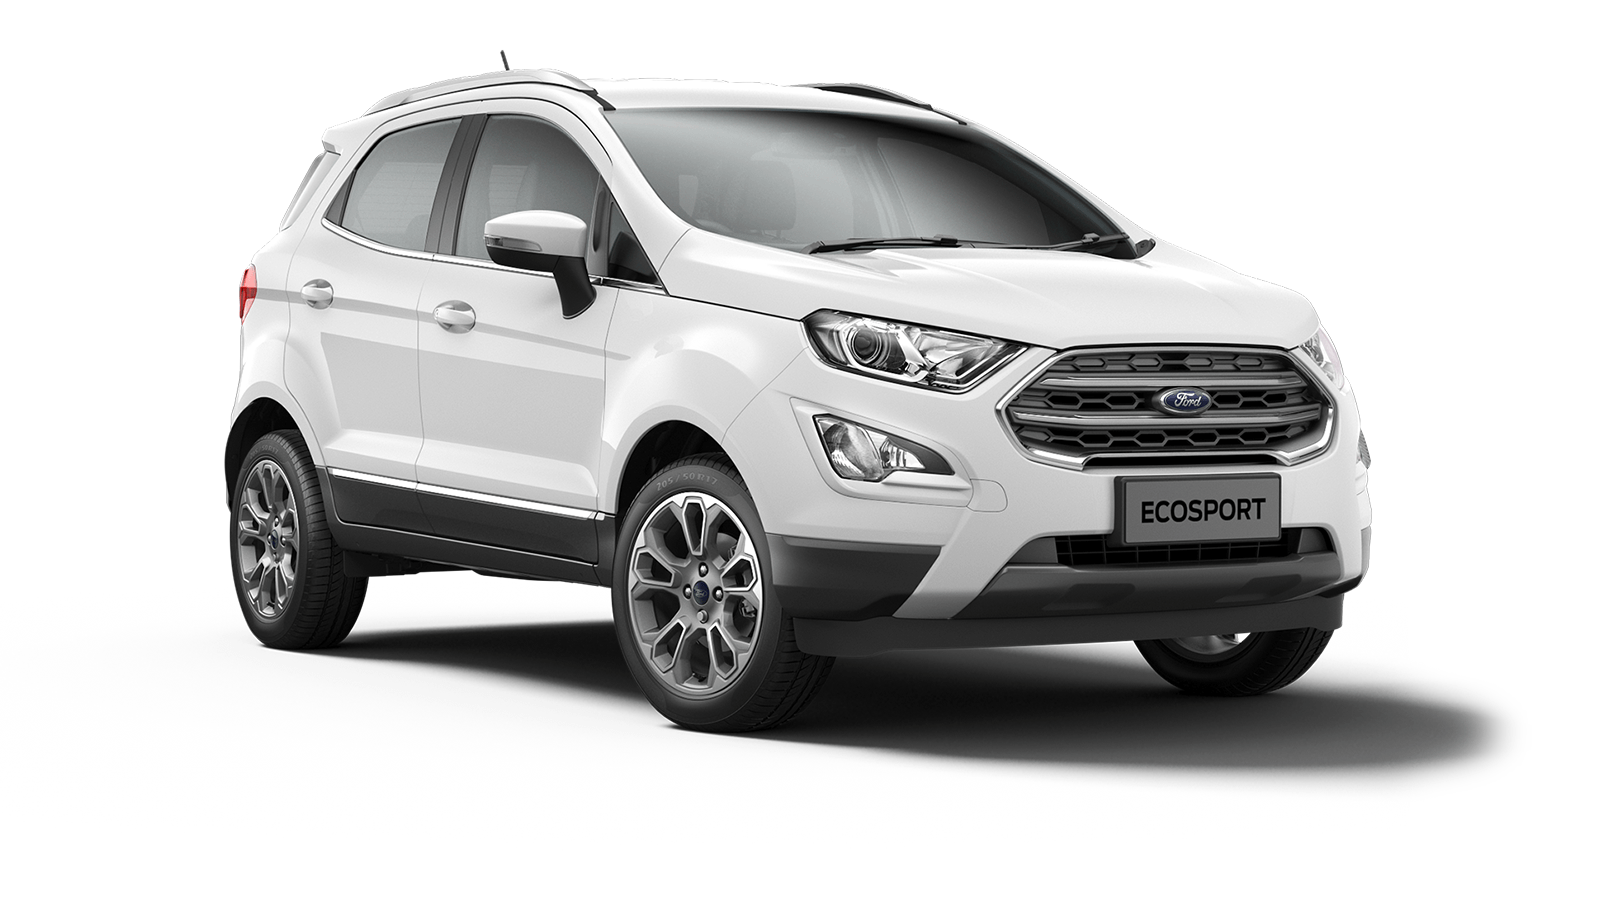 ECOSPORT Titanium 5 Door in Frozen White